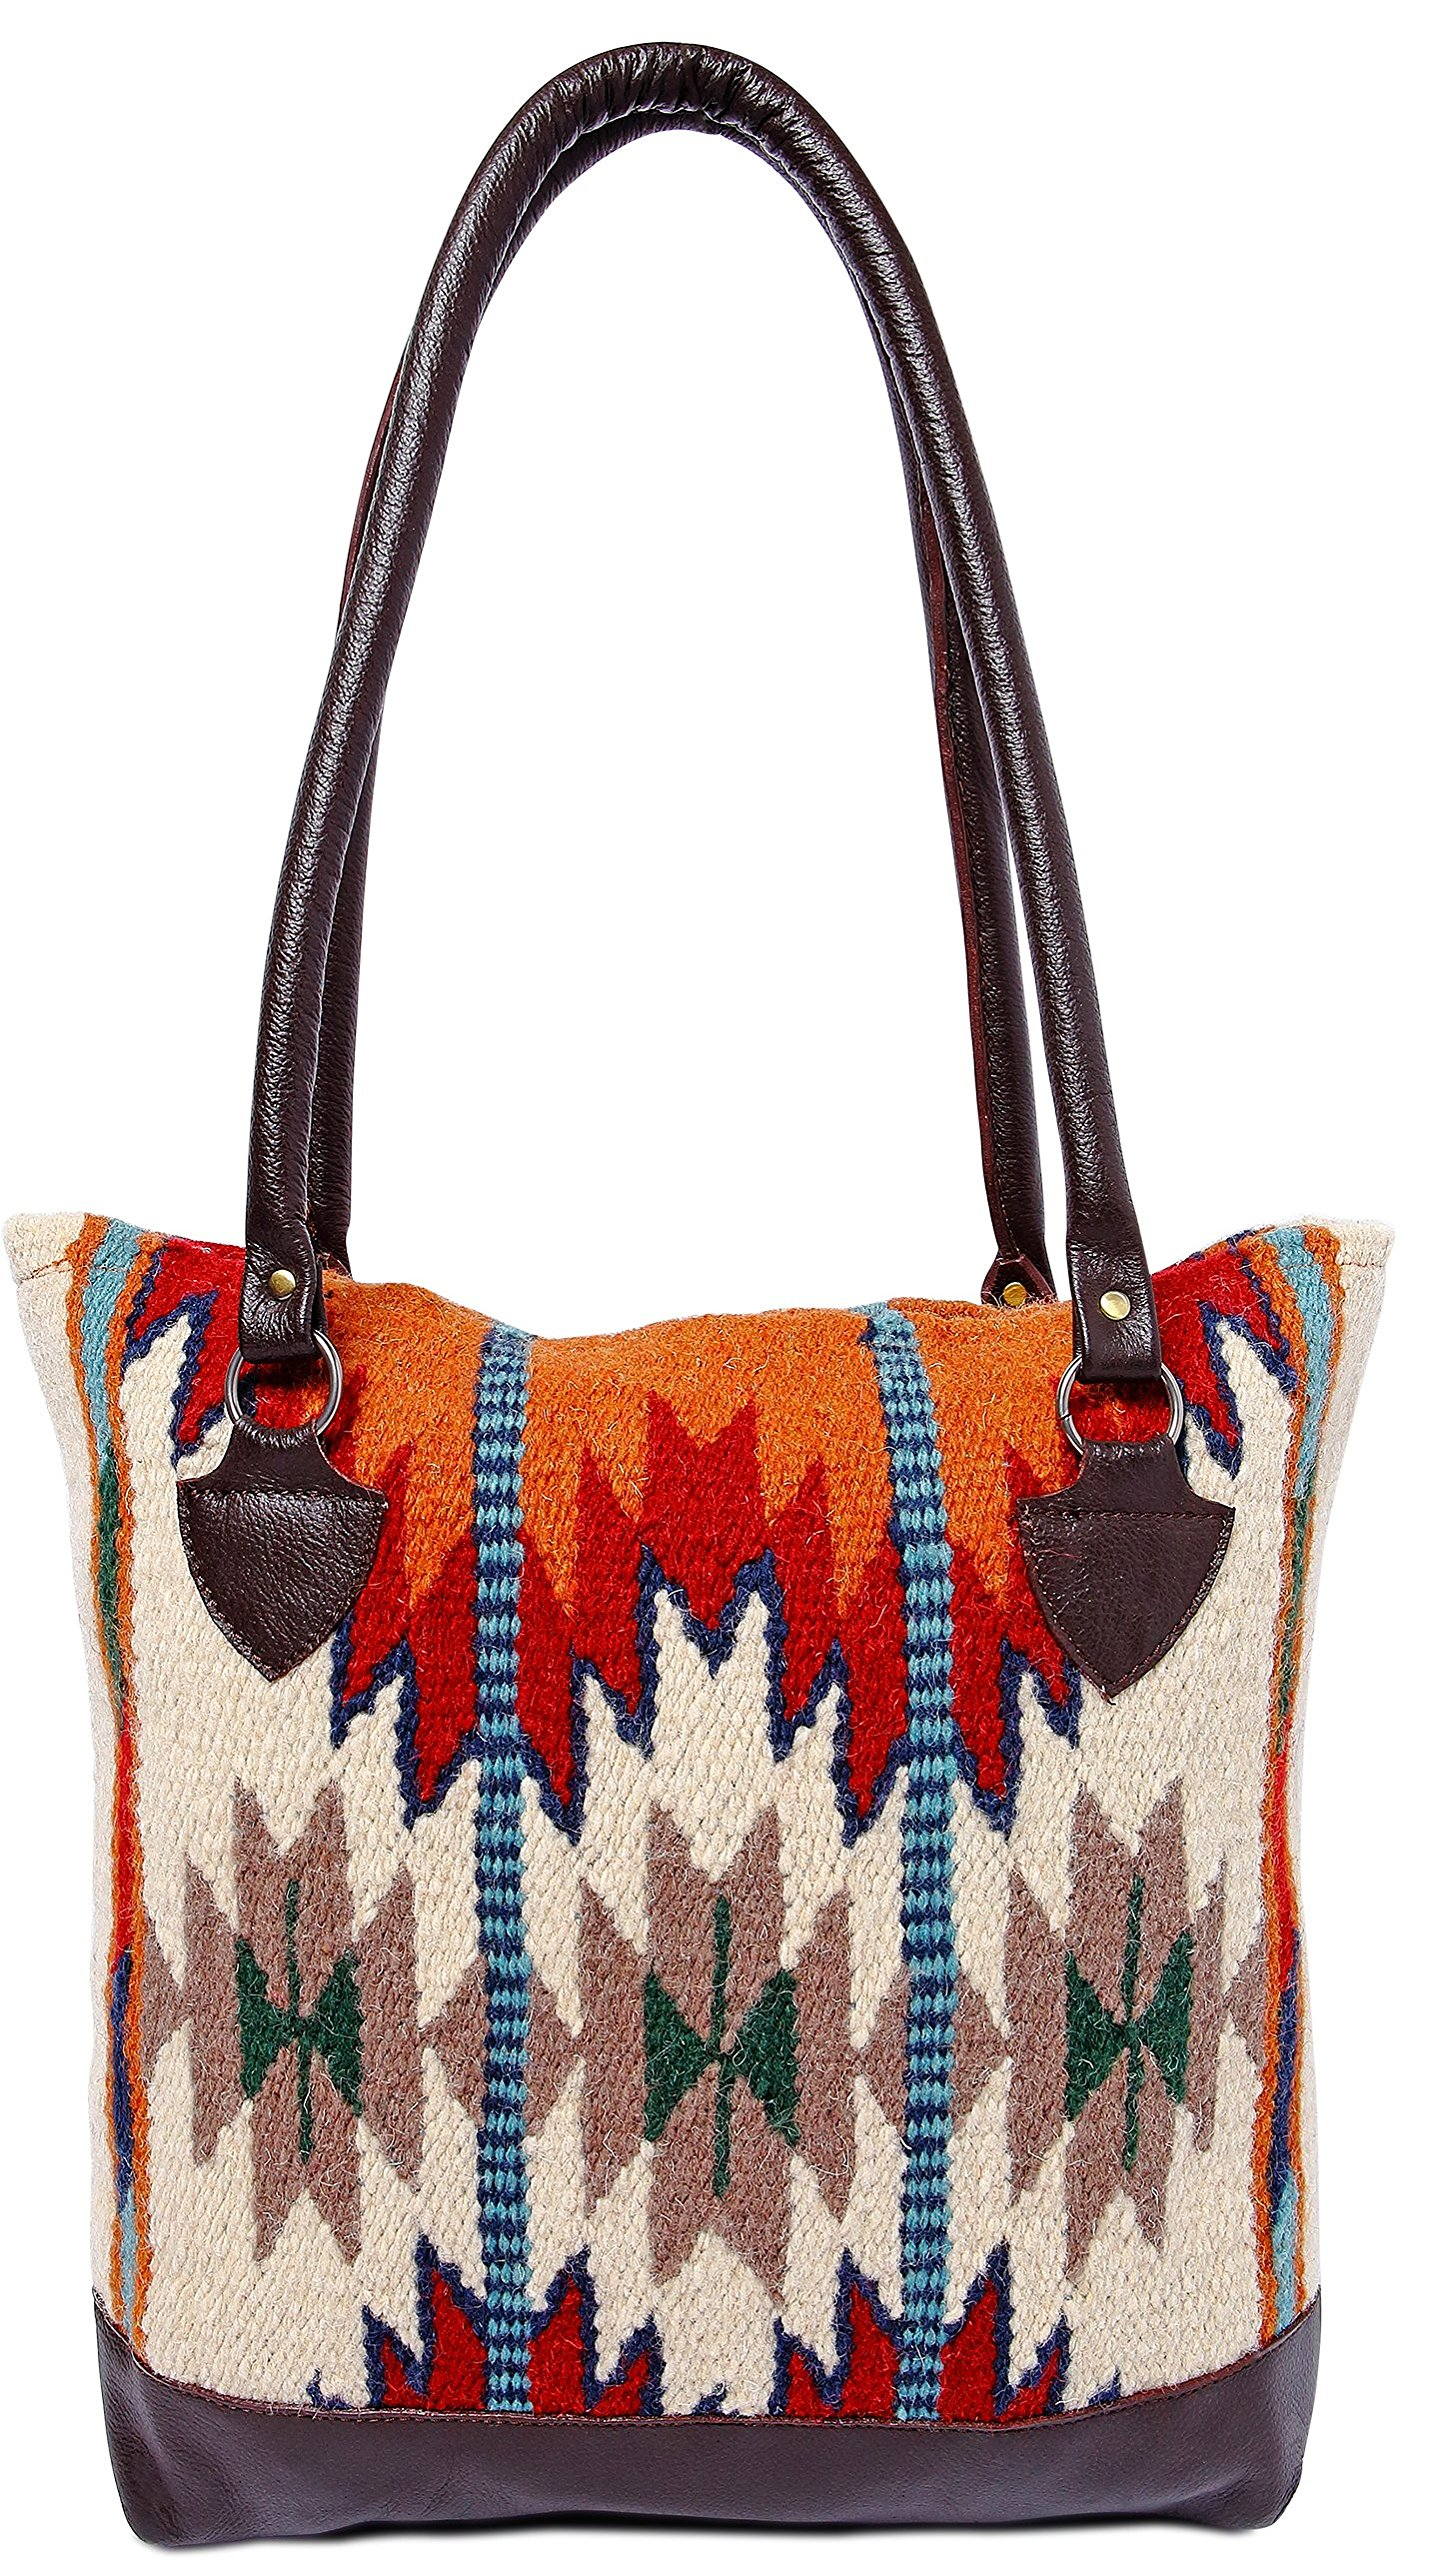 Genuine Leather Large Eco Friendly Tote Bag, Native American Styles on Hand-Woven Wool (Earth Dancer) by El Paso Designs